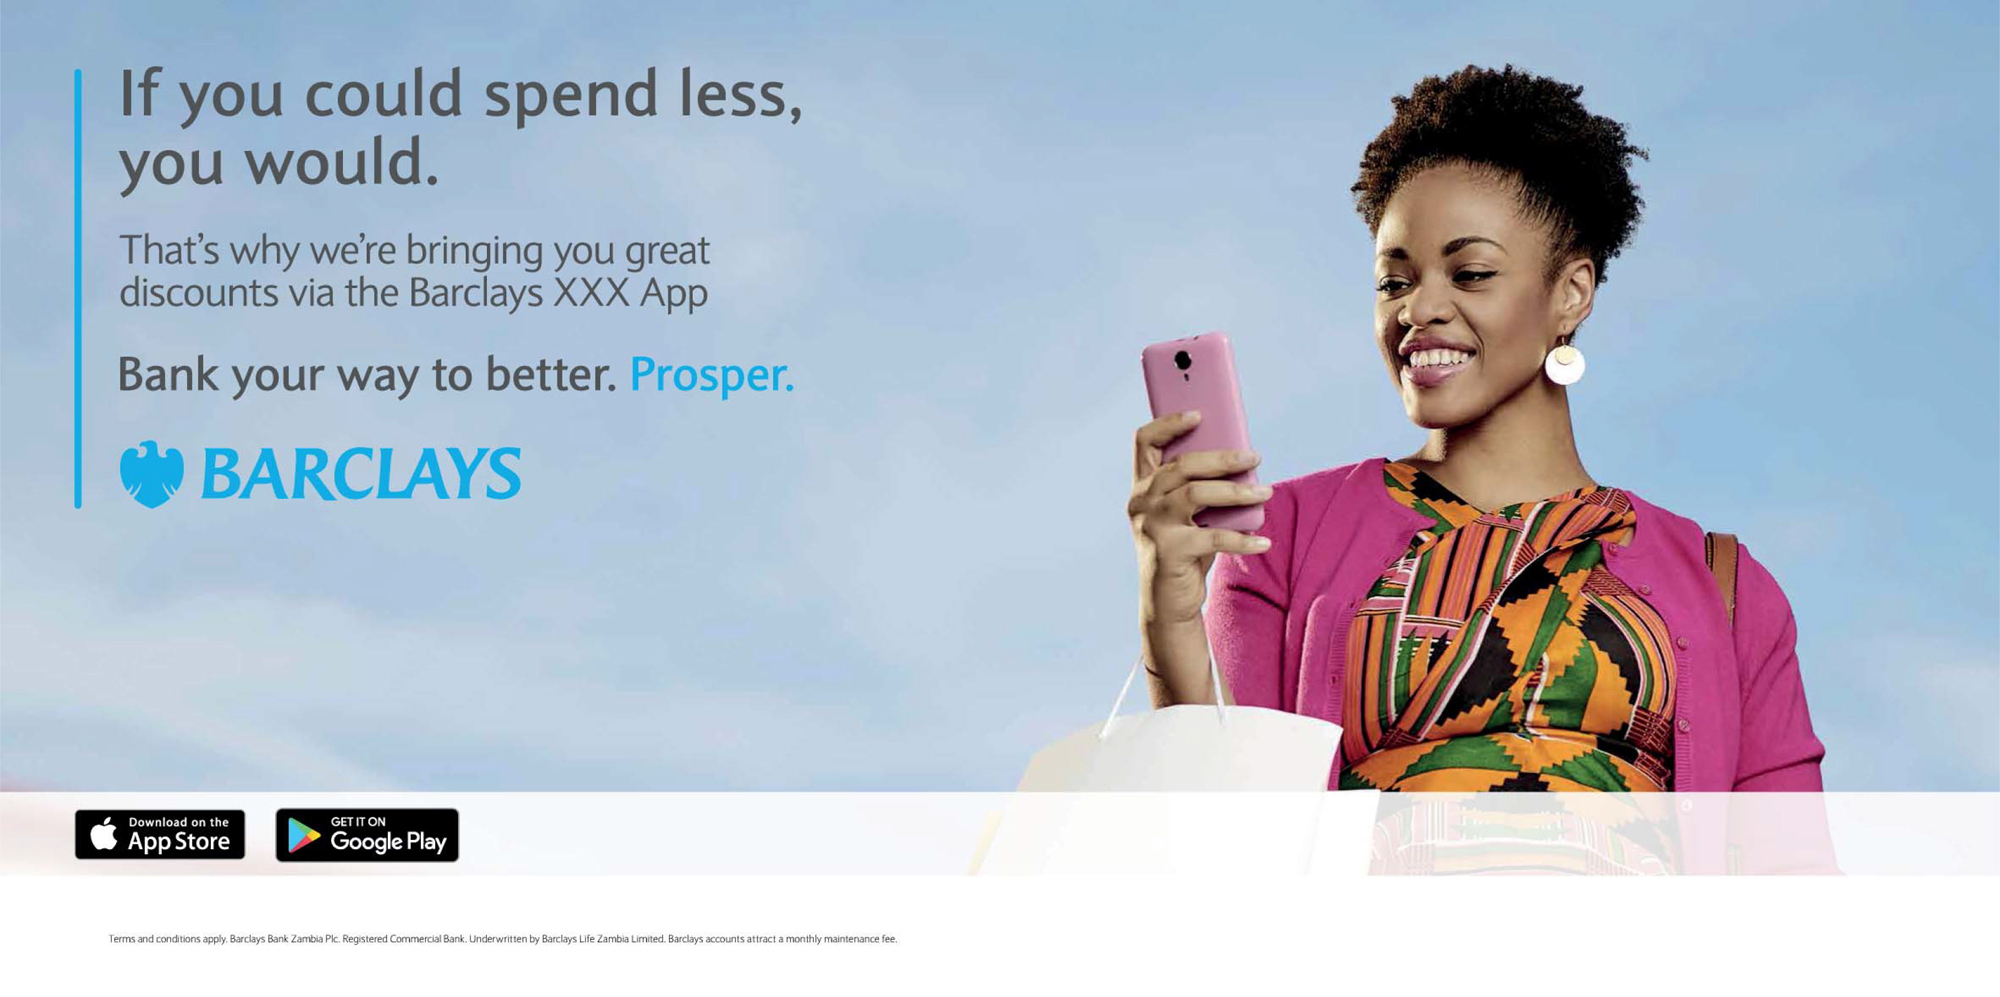 Barclays Personal Banking Campaign Toolkit 26 APRIL-56.jpg